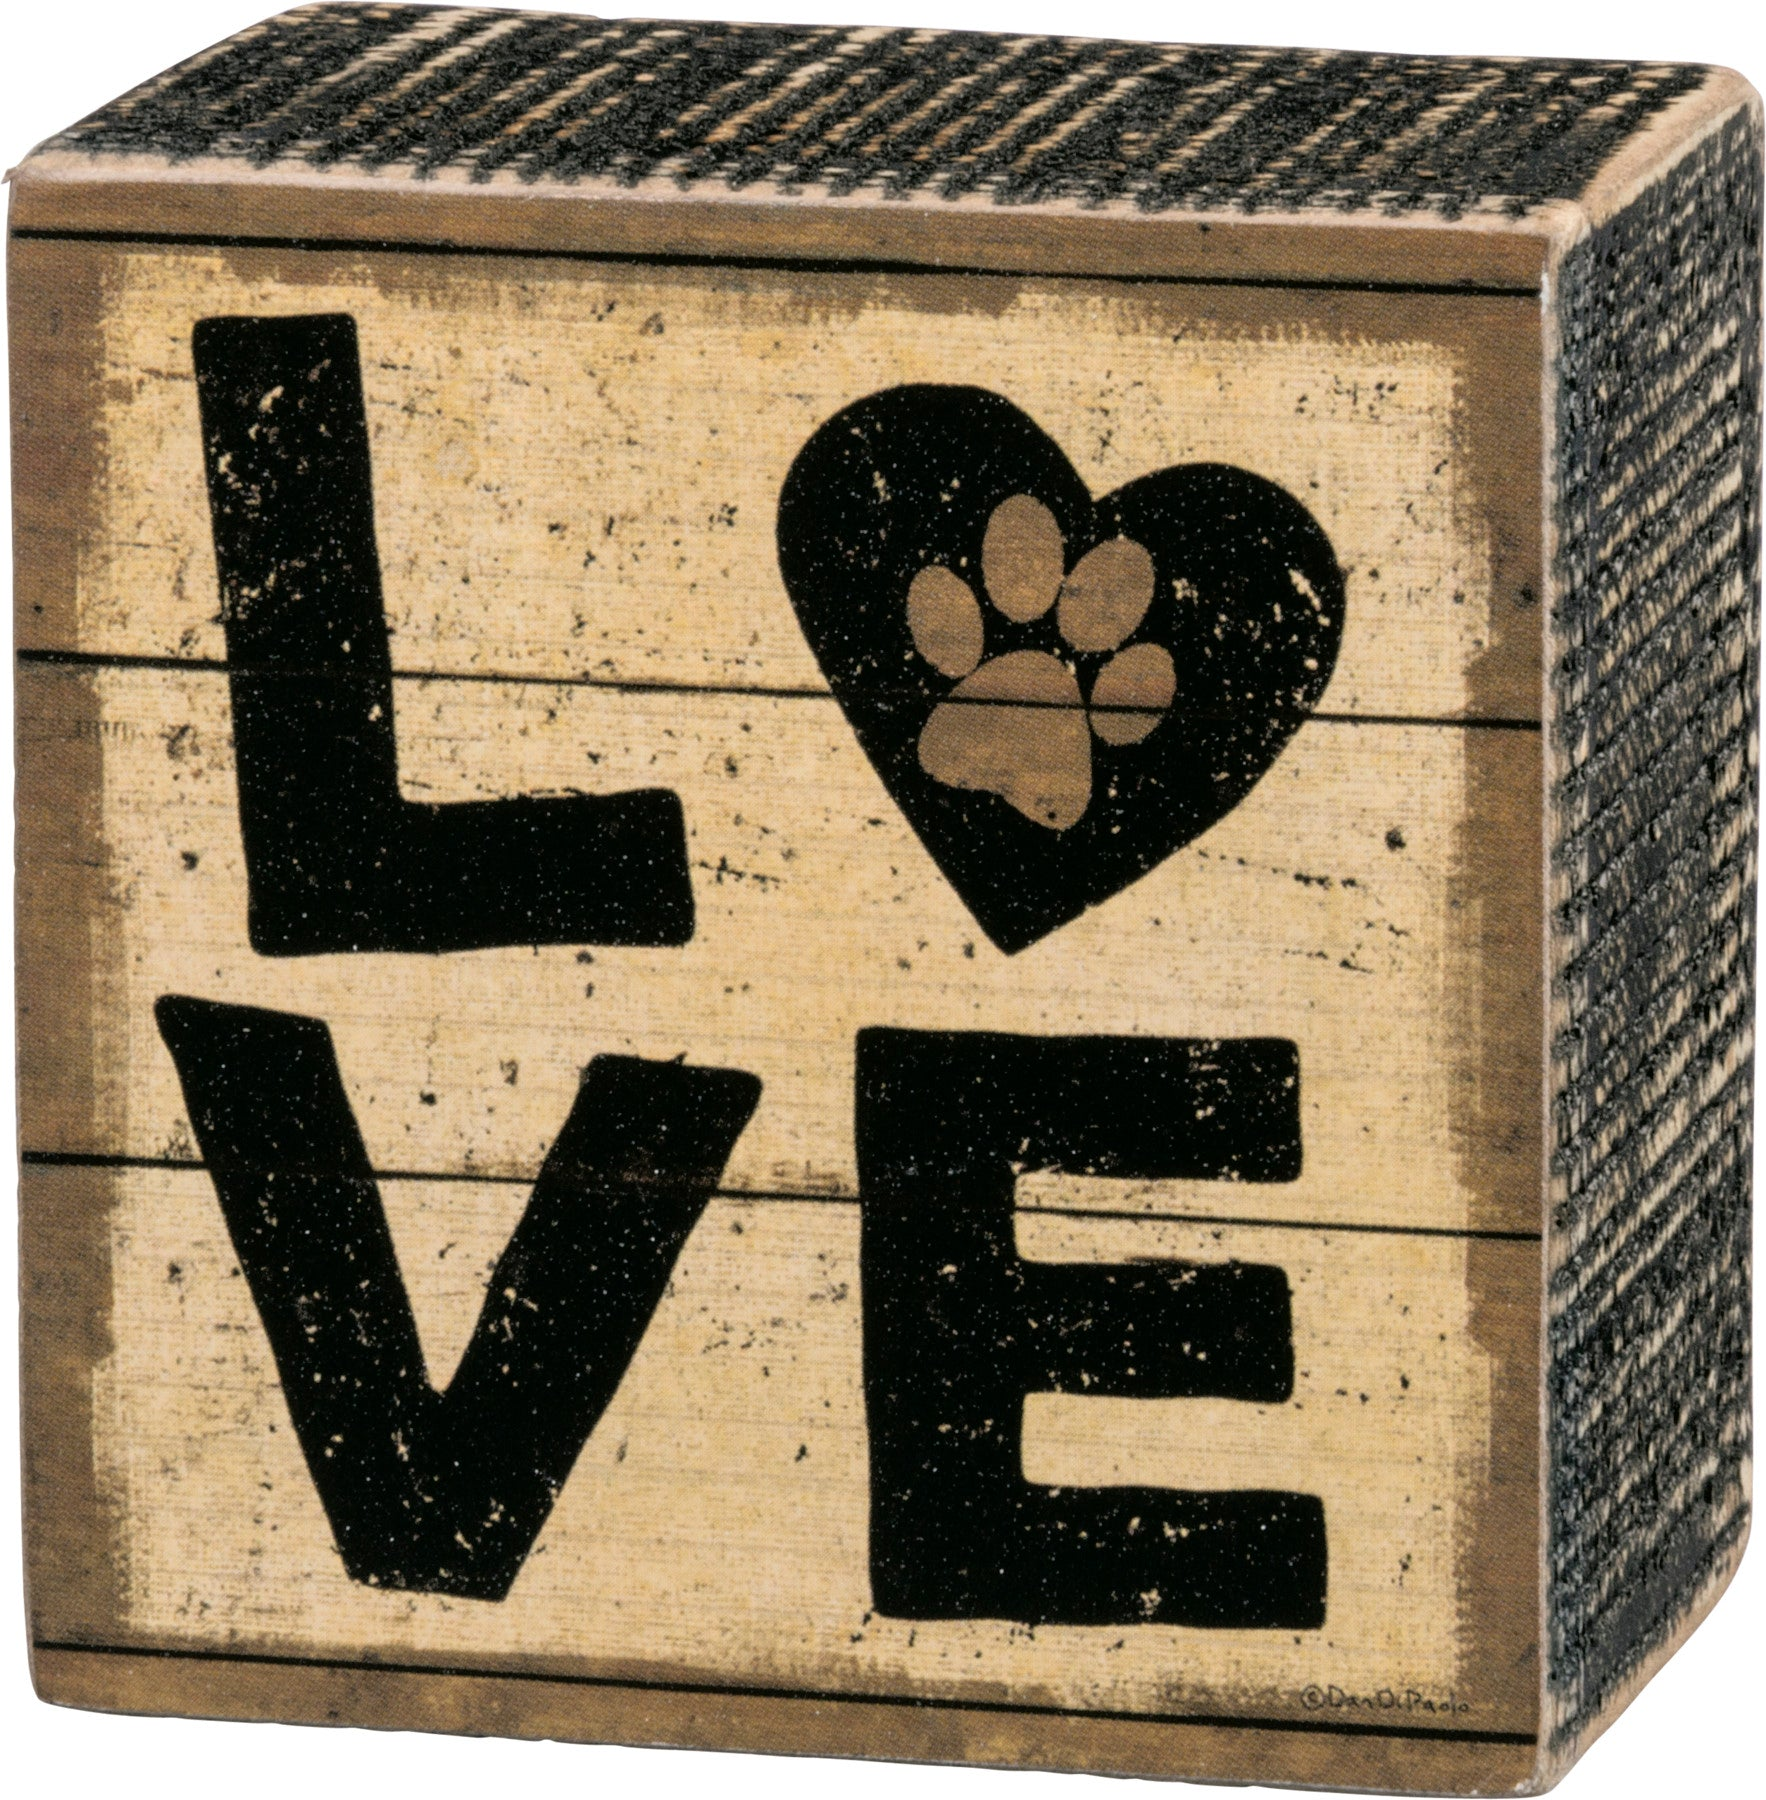 Pets Box Sign - Shopbluemoonbentonville